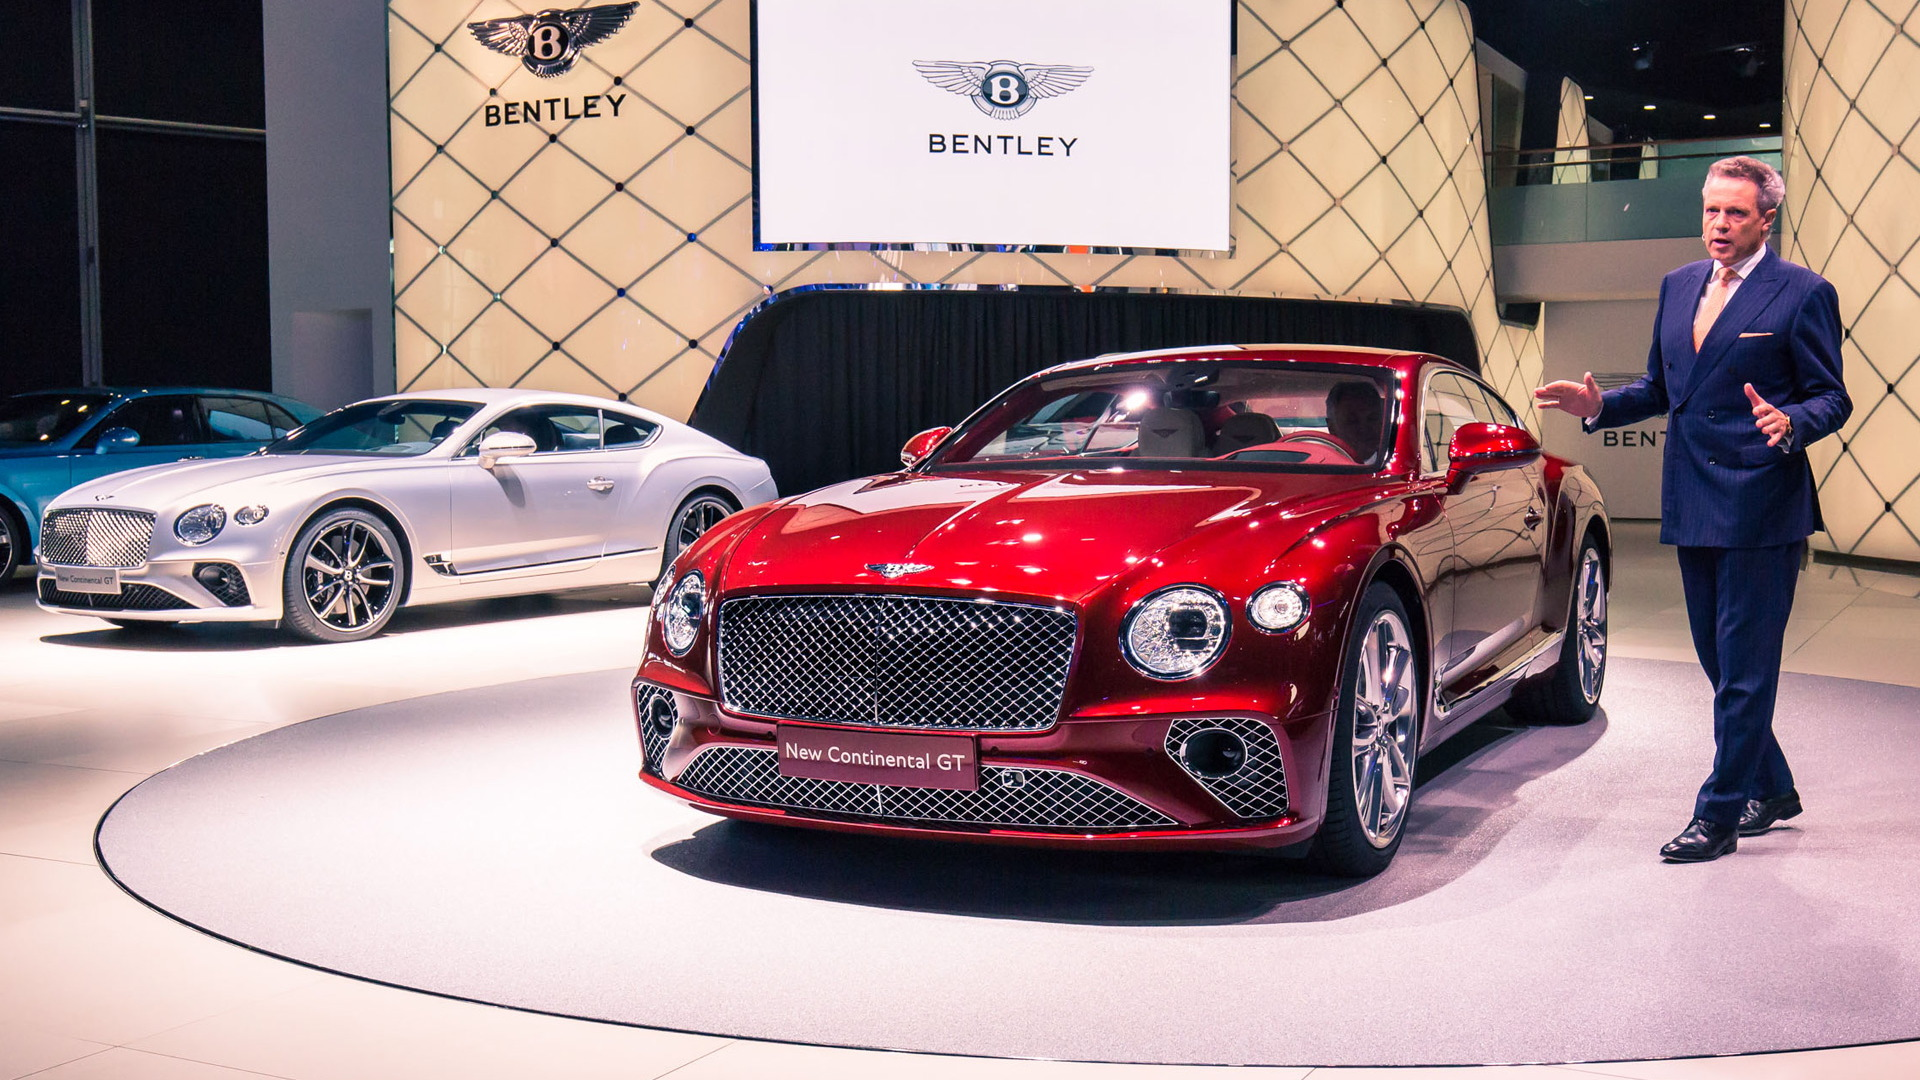 2018 bentley continental gt arrives with more beauty and power